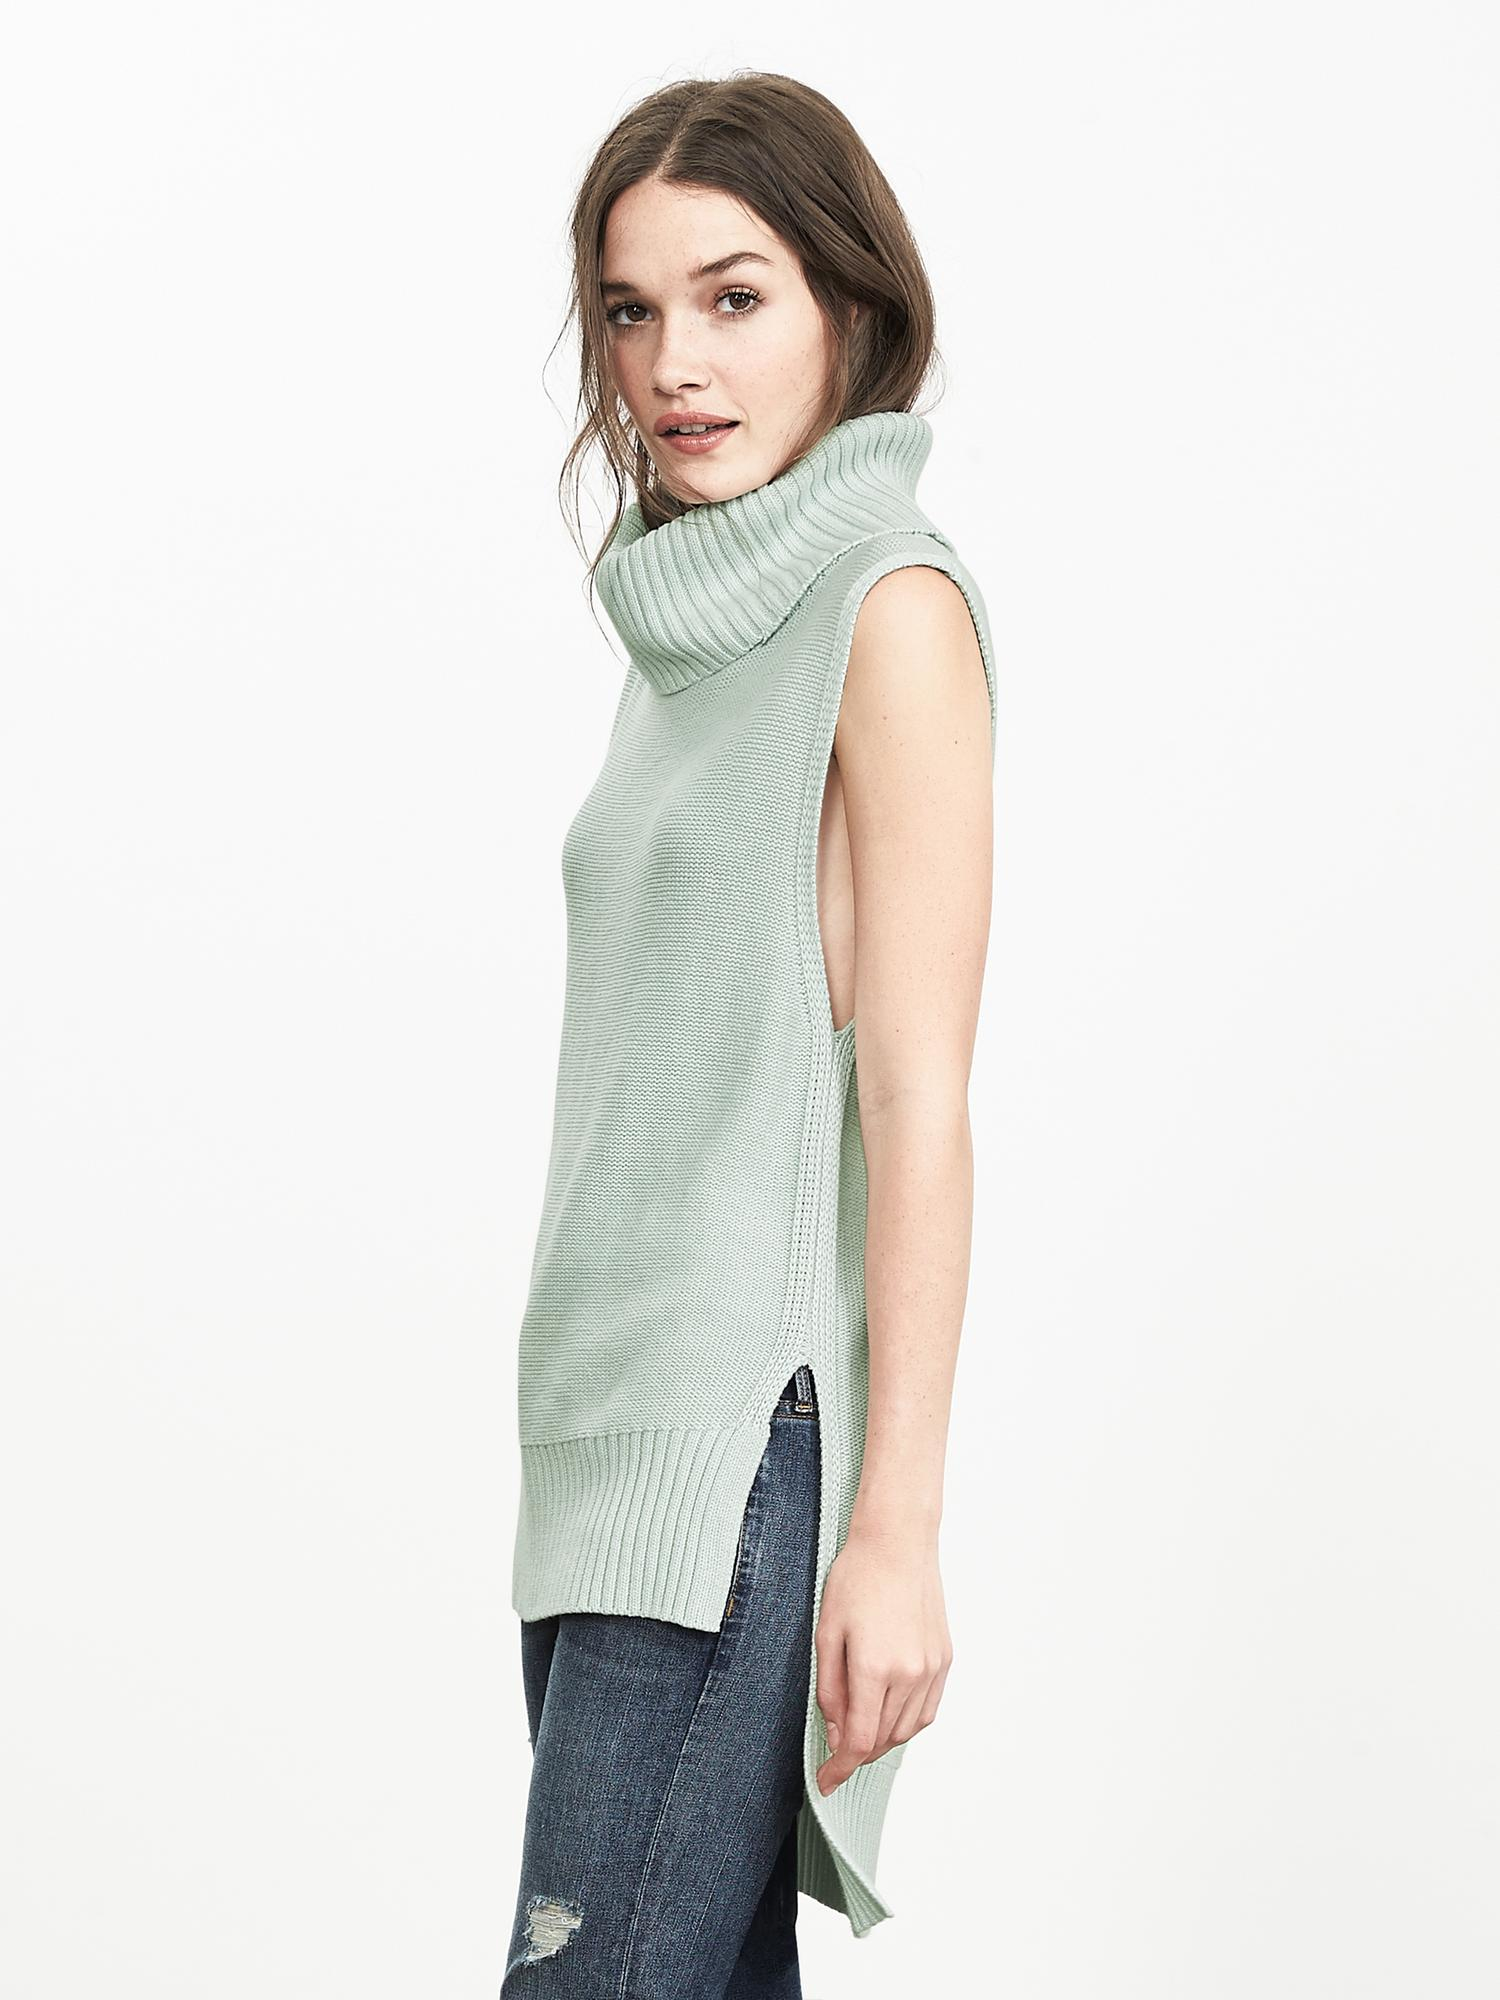 The Lodge sweater is part of the Pinup Girl Clothing collaboration with Betty & Veronica, and is manufactured in the softest acrylic knit in pink, grey and blue stripes. This wonderful sleeveless sweater and has a low mock turtleneck detail and has a comfortable, body skimming fit, .